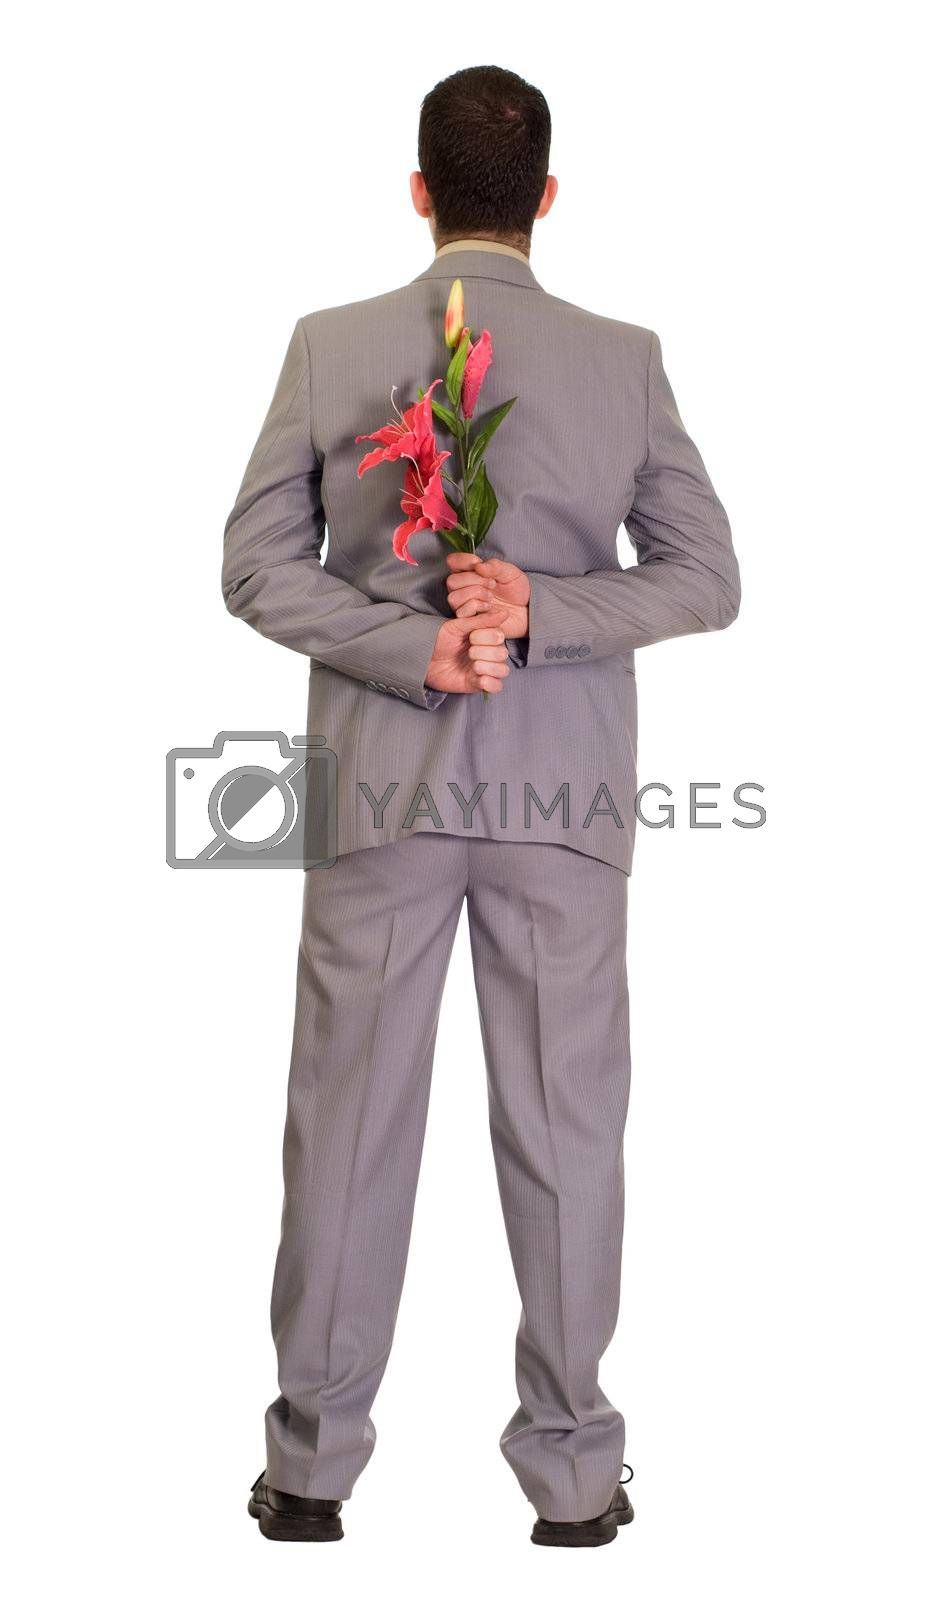 Full body view of a man wearing a suit holding some fake flowers behind his back